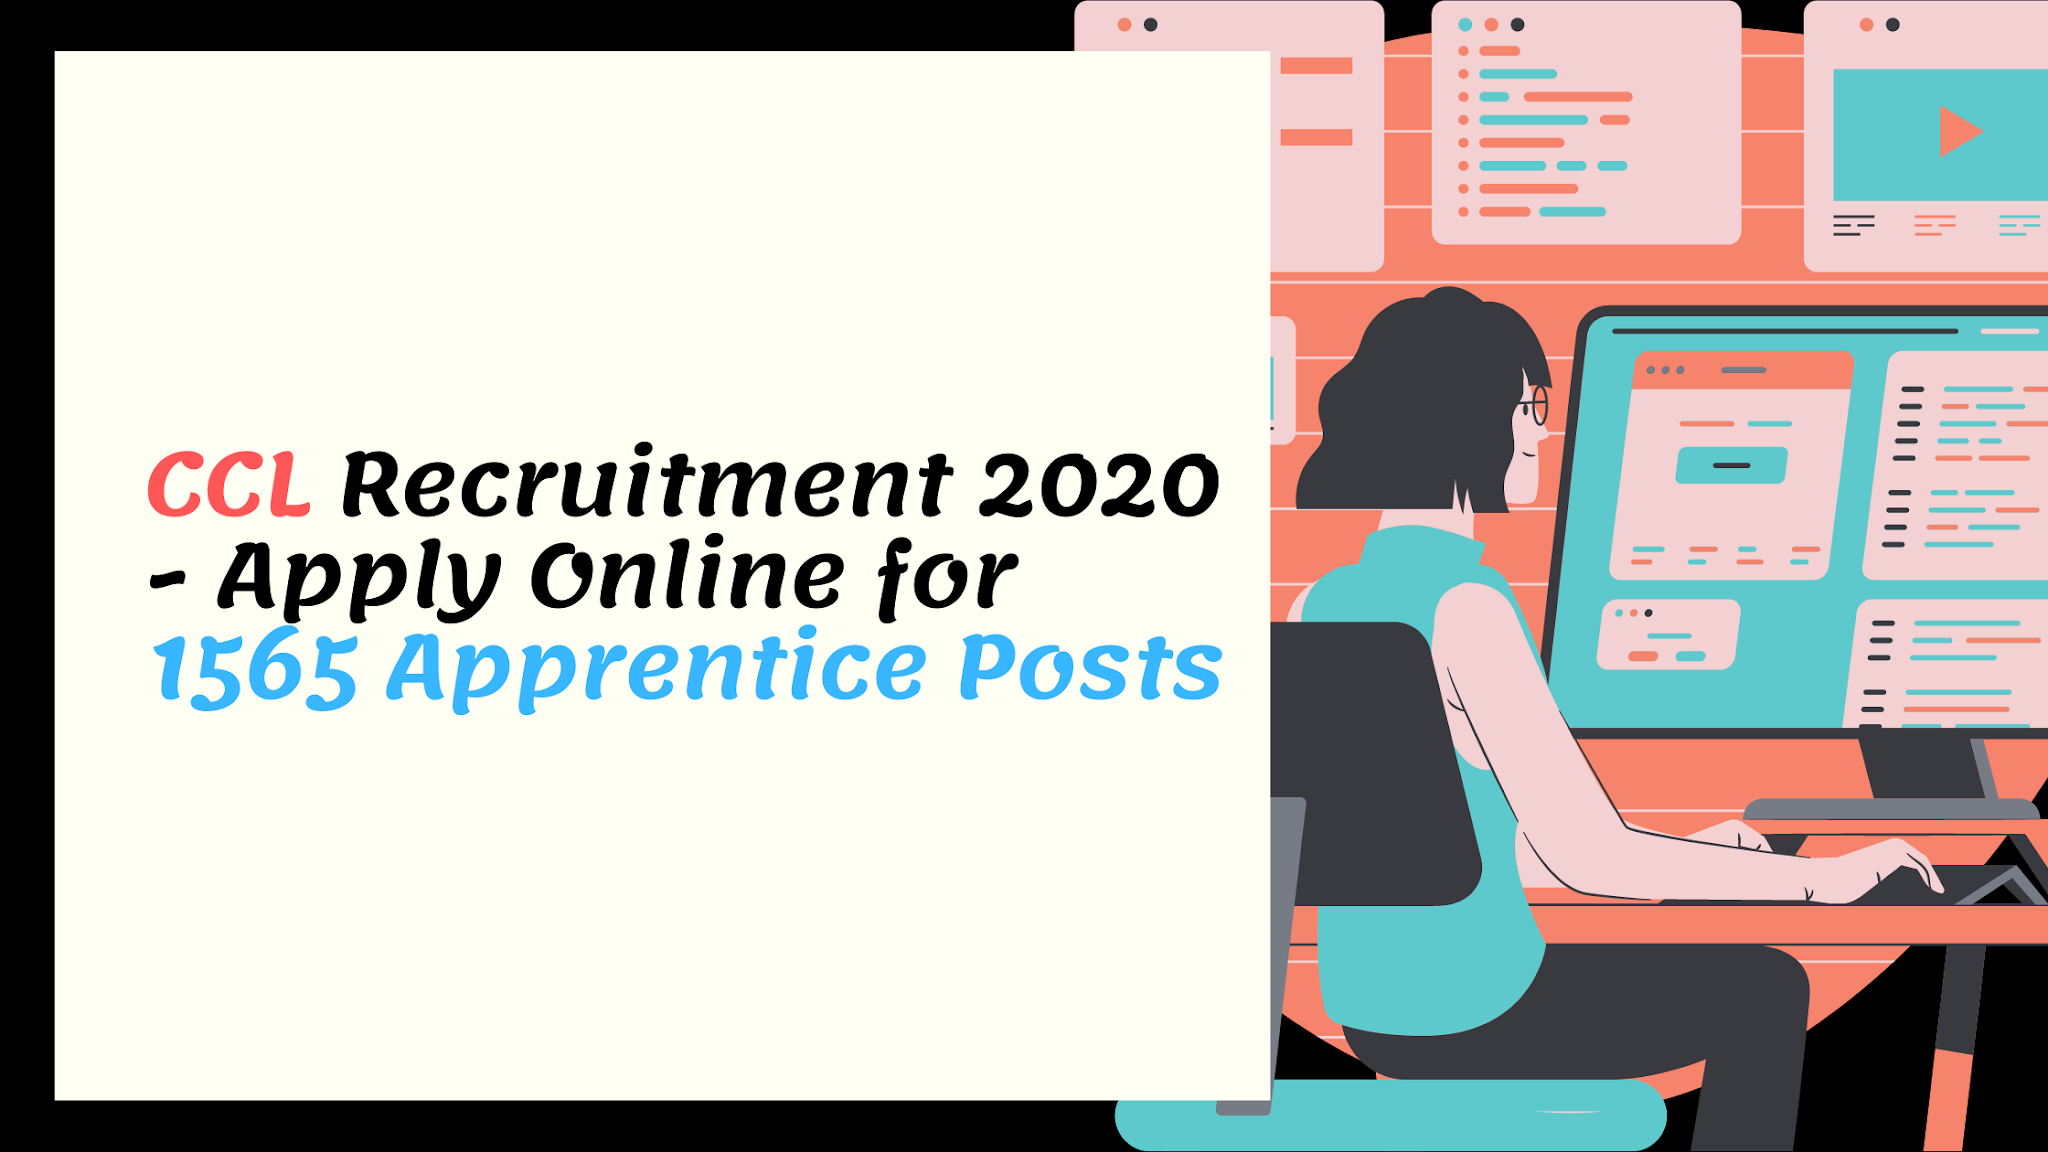 CCL Recruitment 2020 - Apply Online for 1565 Apprentice Posts